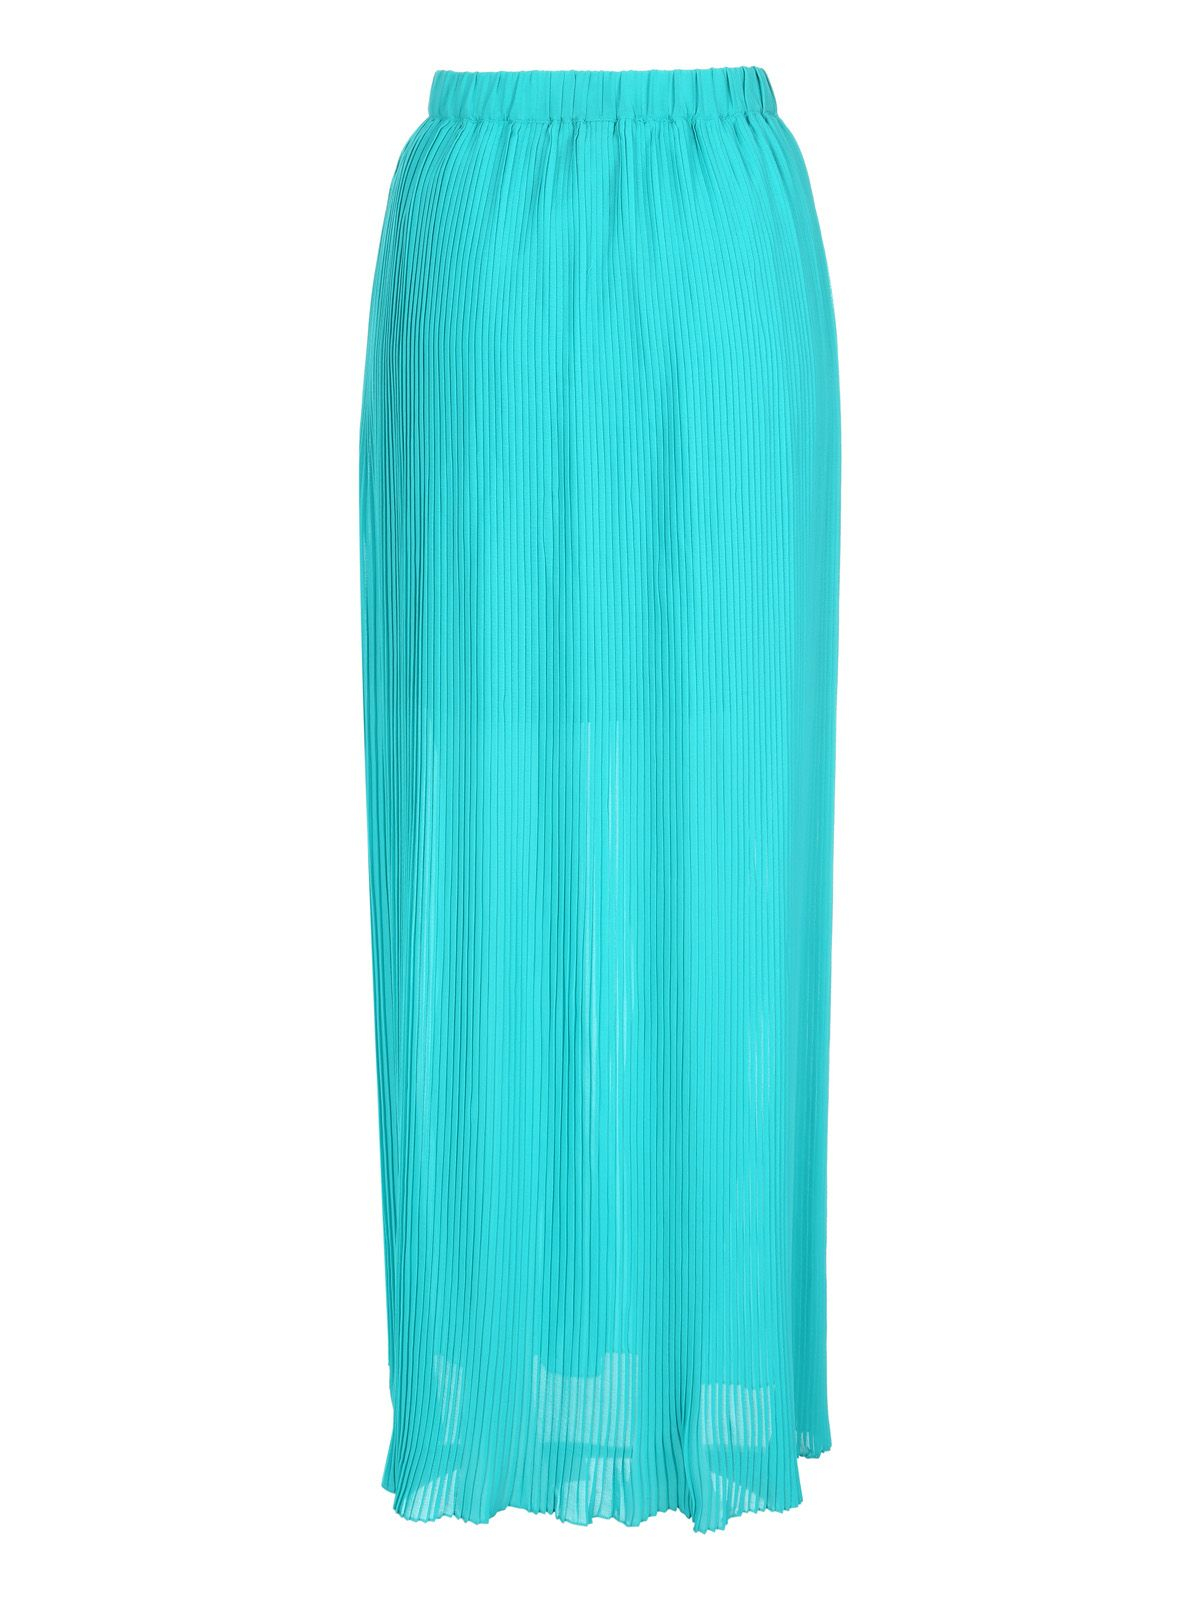 norman pleated maxi skirt in green lyst